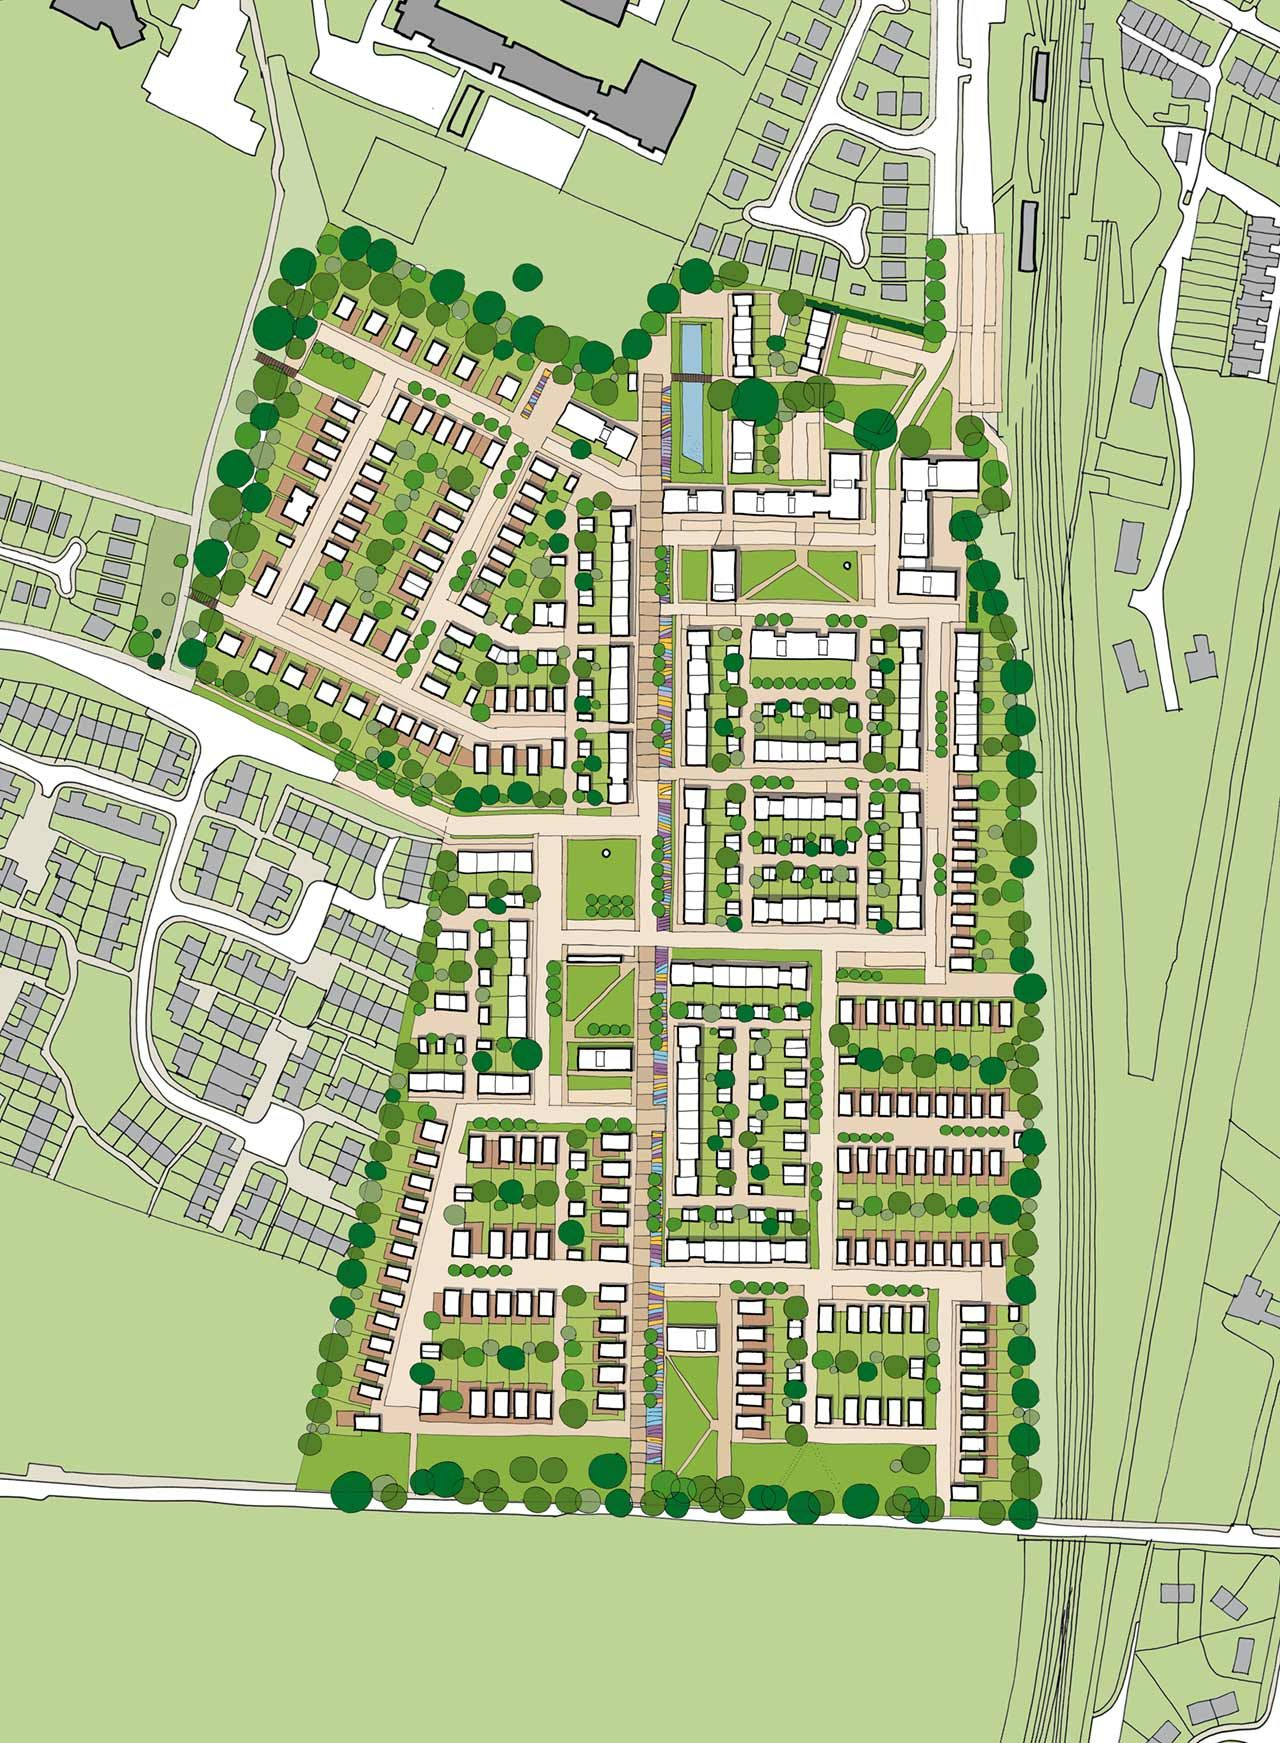 Overall Masterplan South Queensferry Residential Masterplan At The Core Of This Mixed Use Masterplan I Urban Planning Urban Design Plan Urban Spaces Design